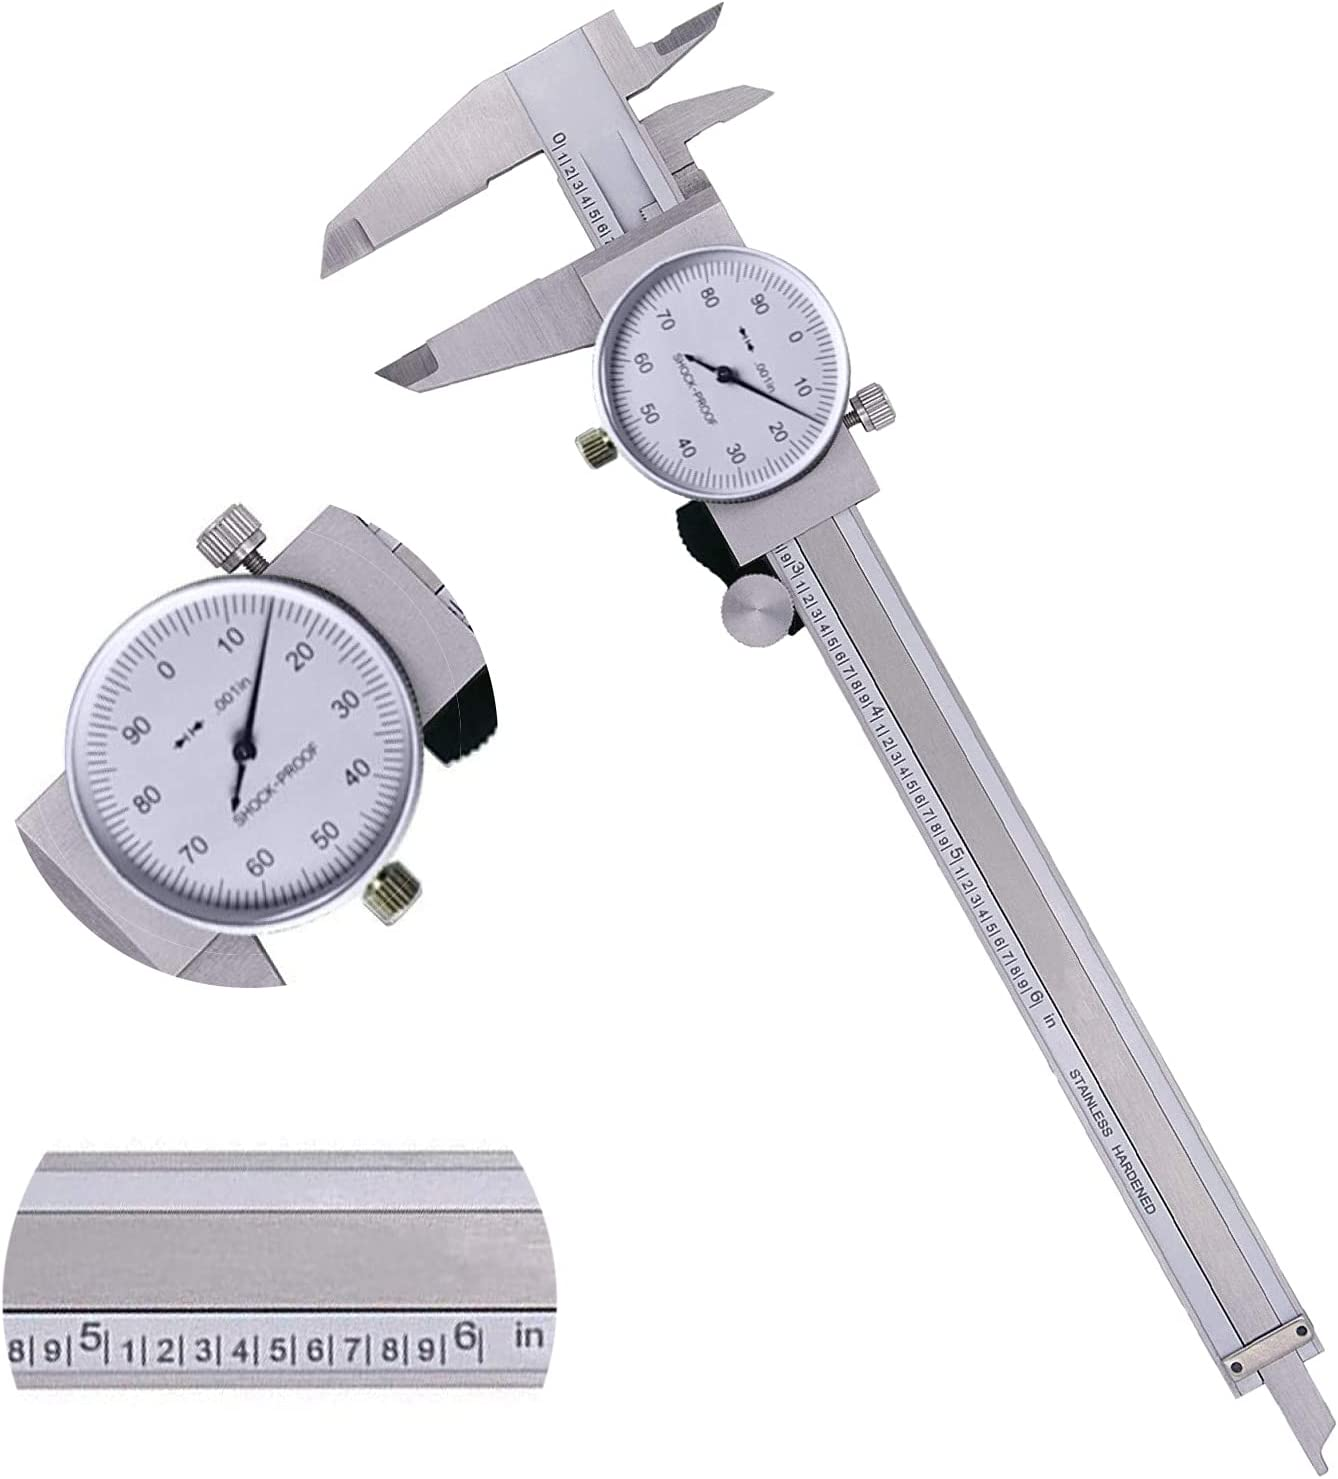 0~6inch 40% OFF Cheap Sale Dial Caliper Measuring Tool Shock Proof 0.001